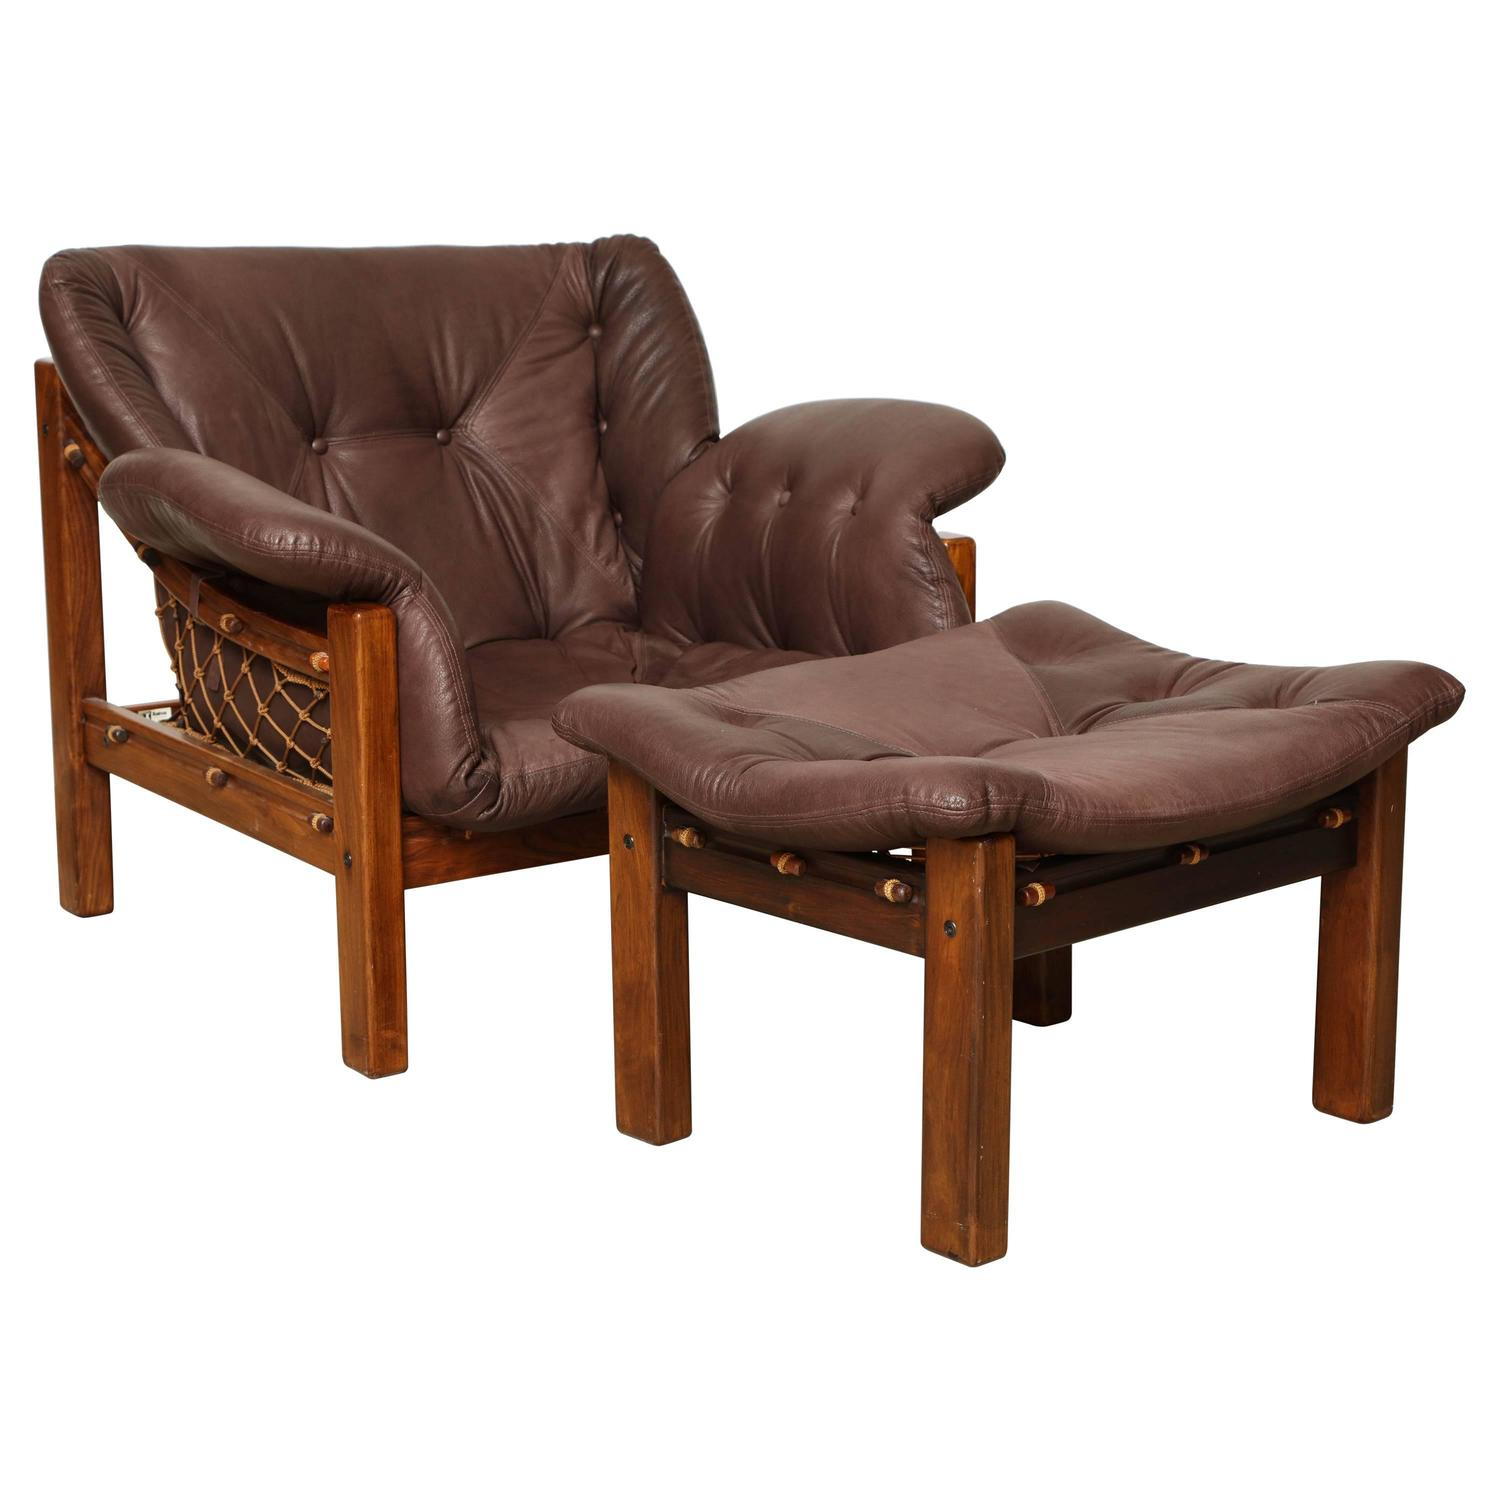 Surprising Jean Gillon Chair And Ottoman At 1Stdibs Unemploymentrelief Wooden Chair Designs For Living Room Unemploymentrelieforg